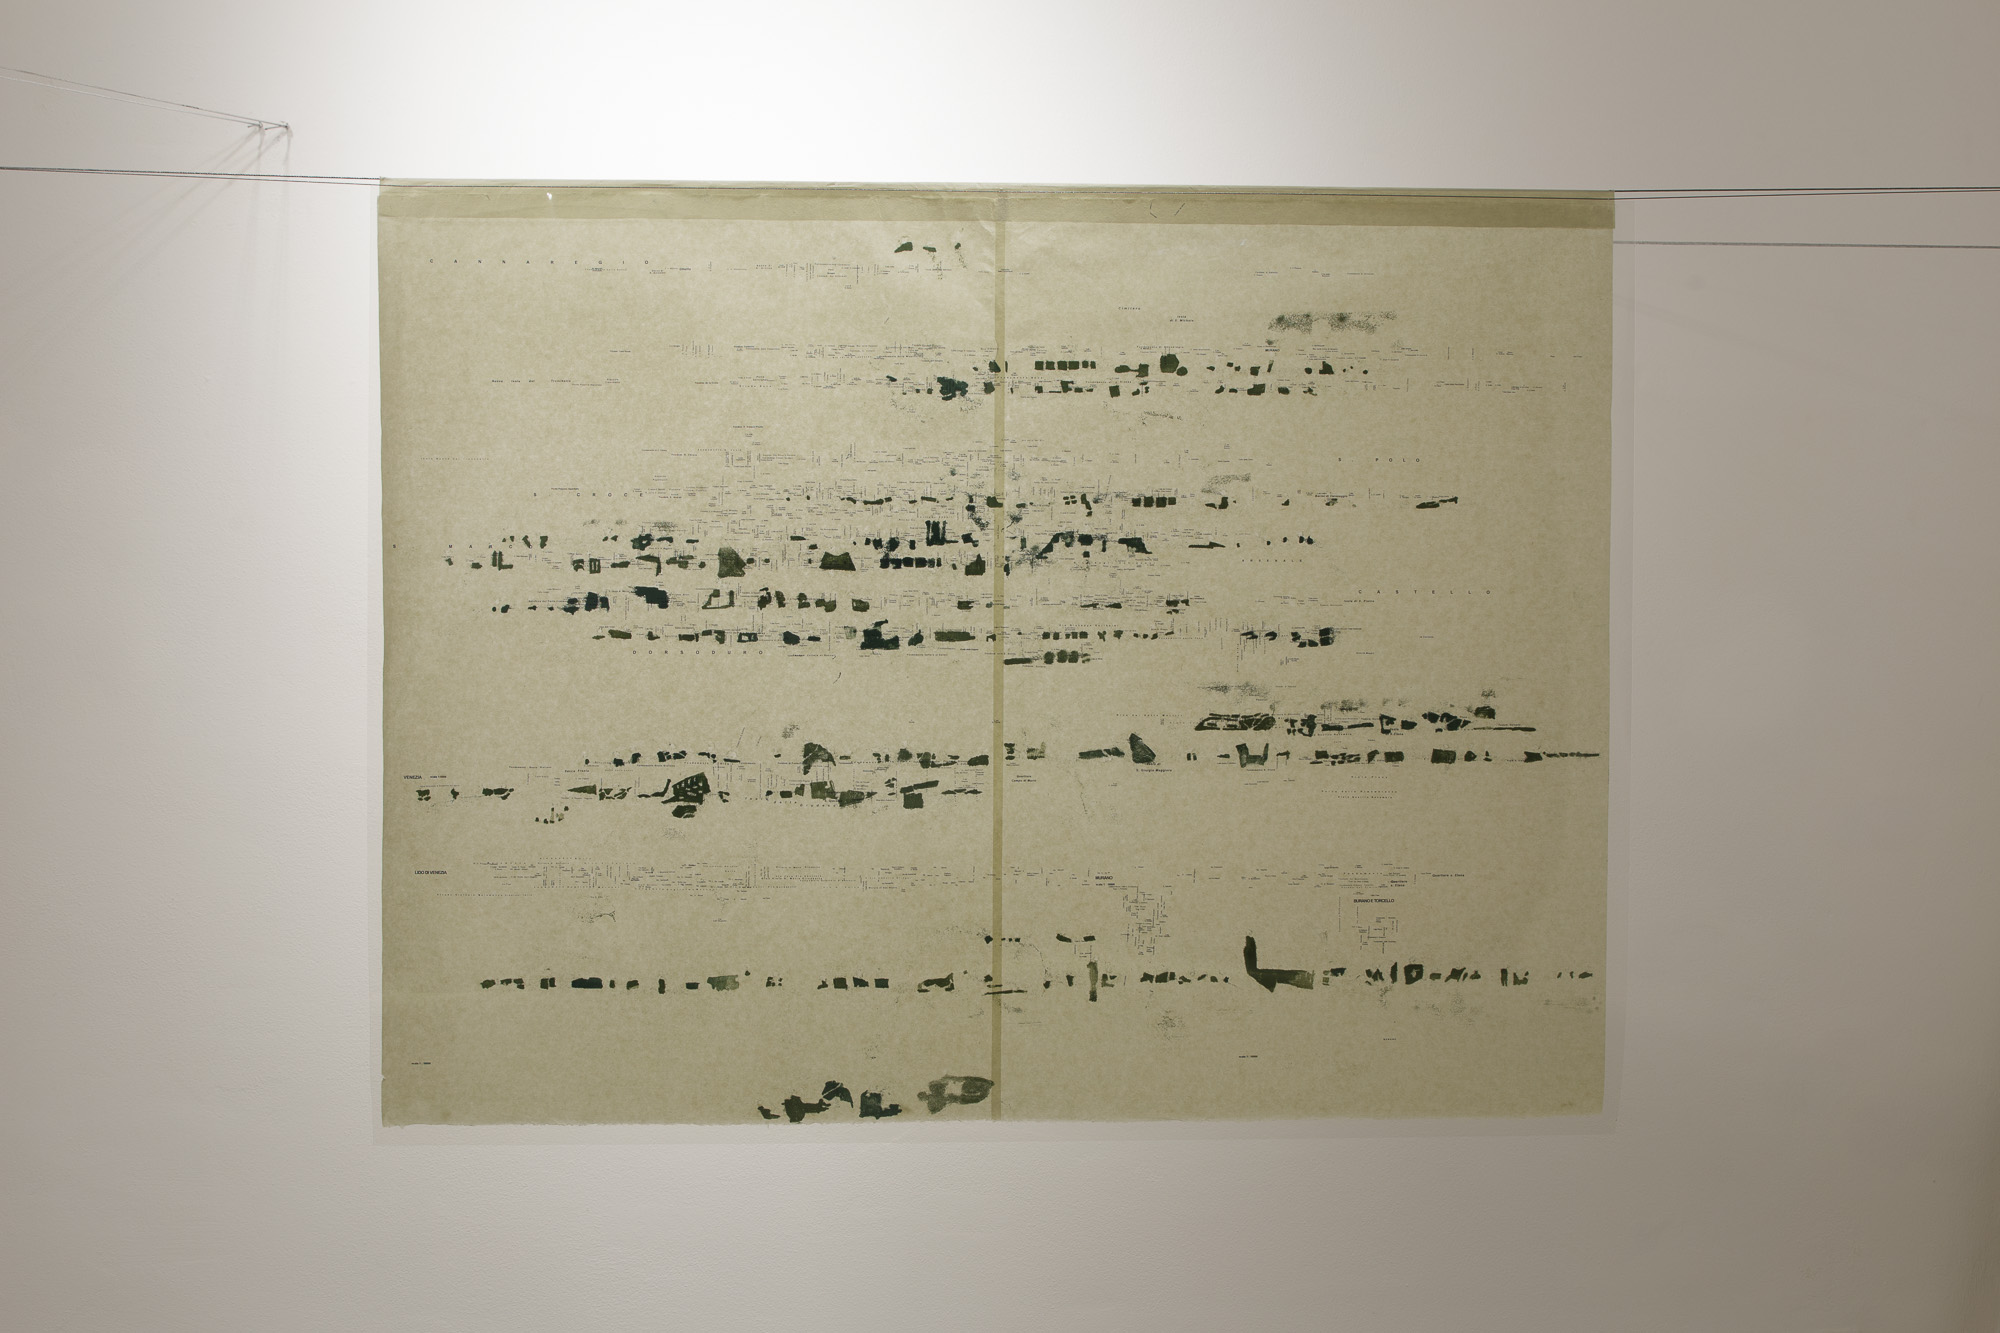 Installation view by Laura Bisotti, Quando scivolerà, 2016, Monotype on Senkwann 40 gsm. paper and digital print on acetate paper, 94 x 126 cm each